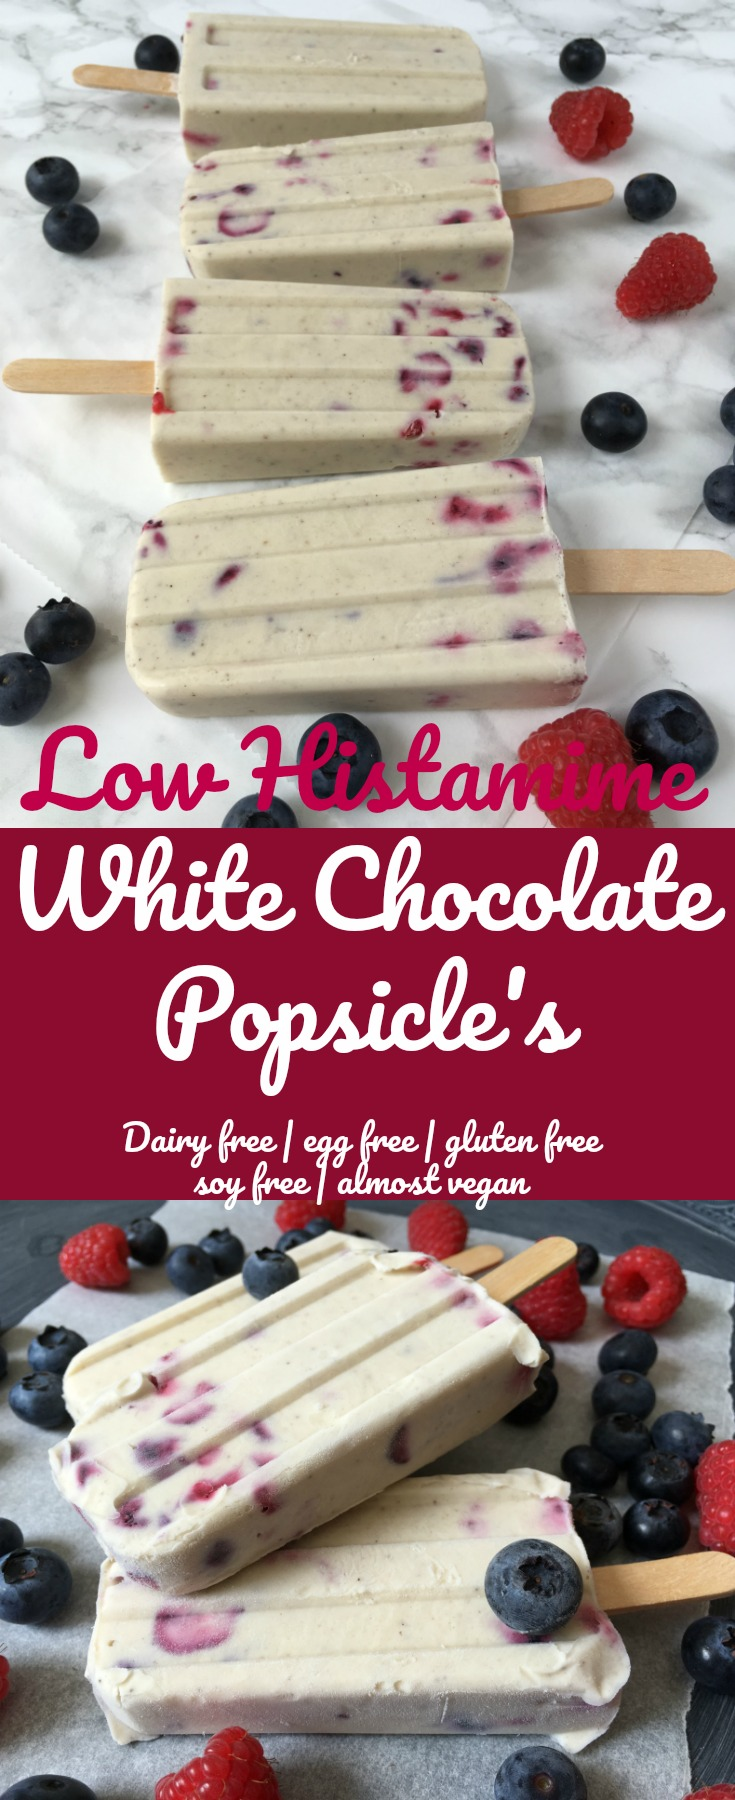 Low Histamine White Chocolate Popsicle's - Soooo Goooood \o/ Pin me!!